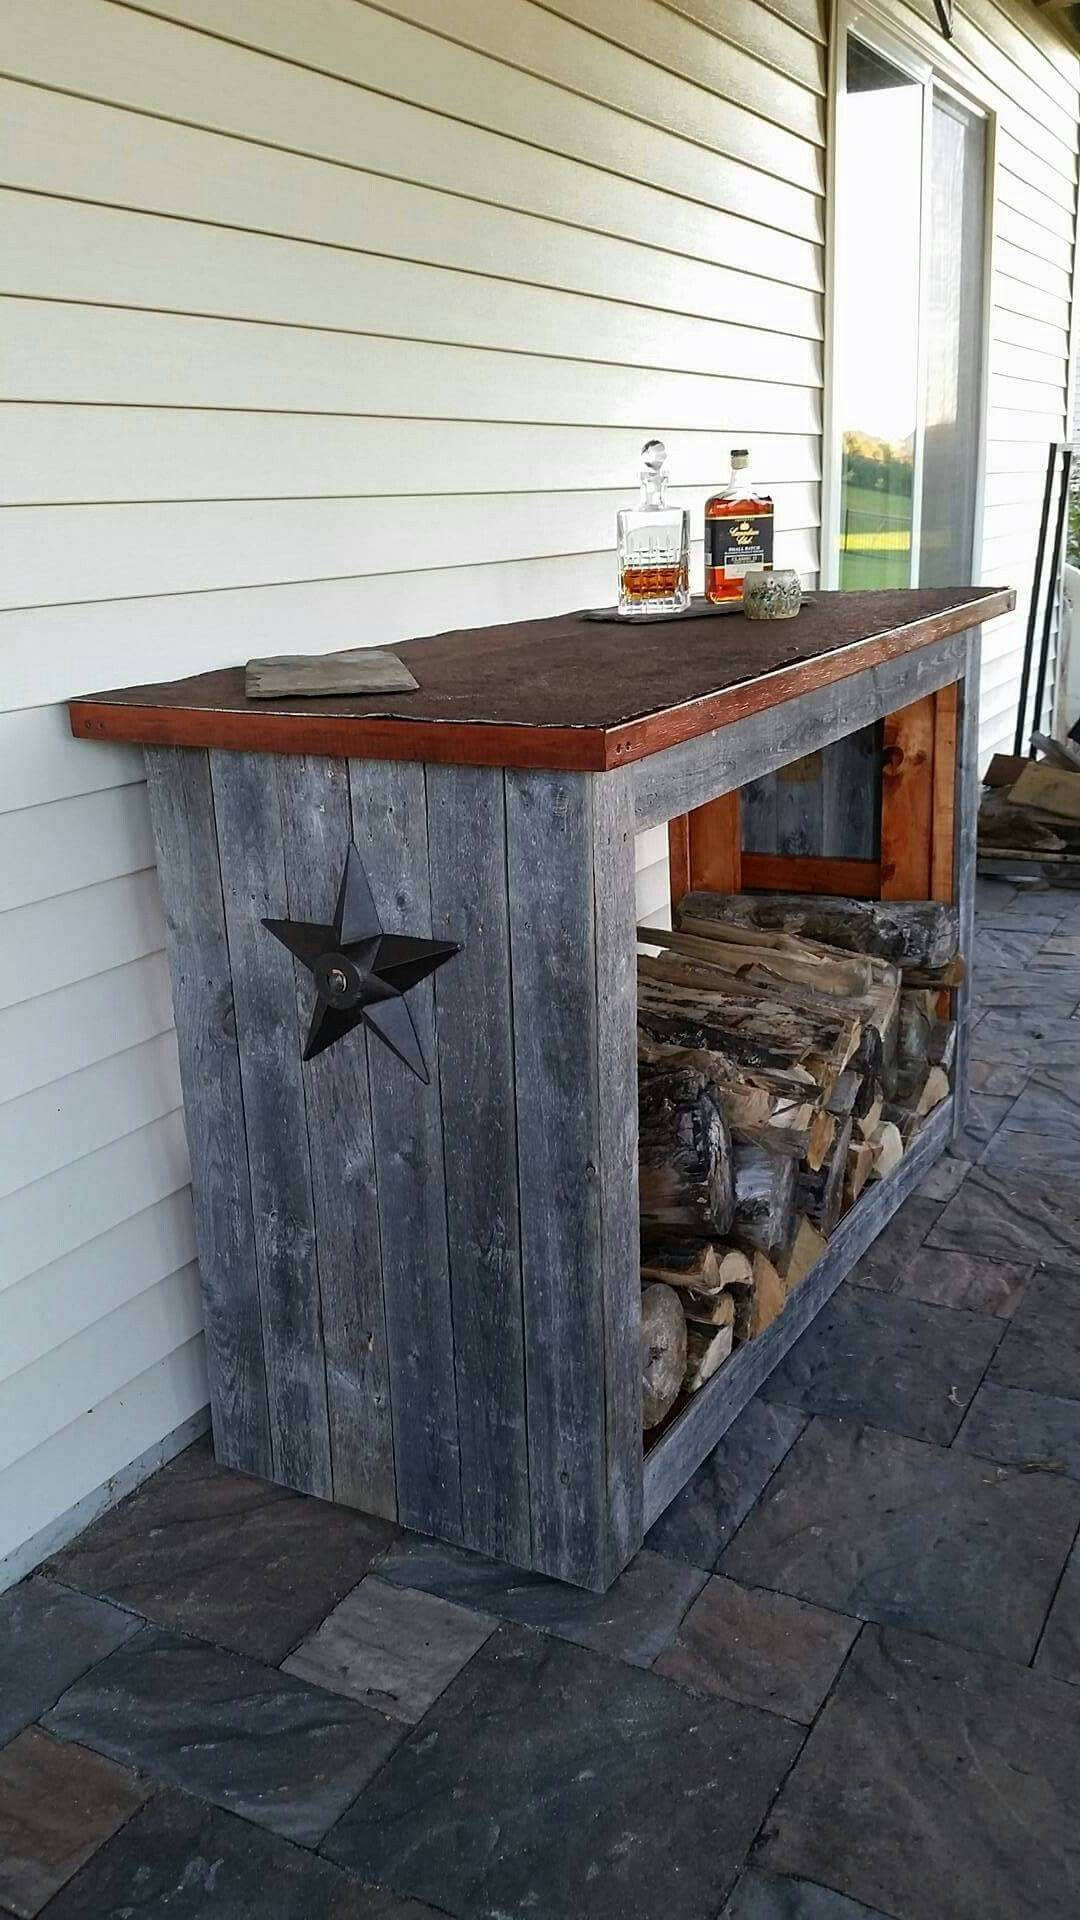 Firewood Rack and Counter